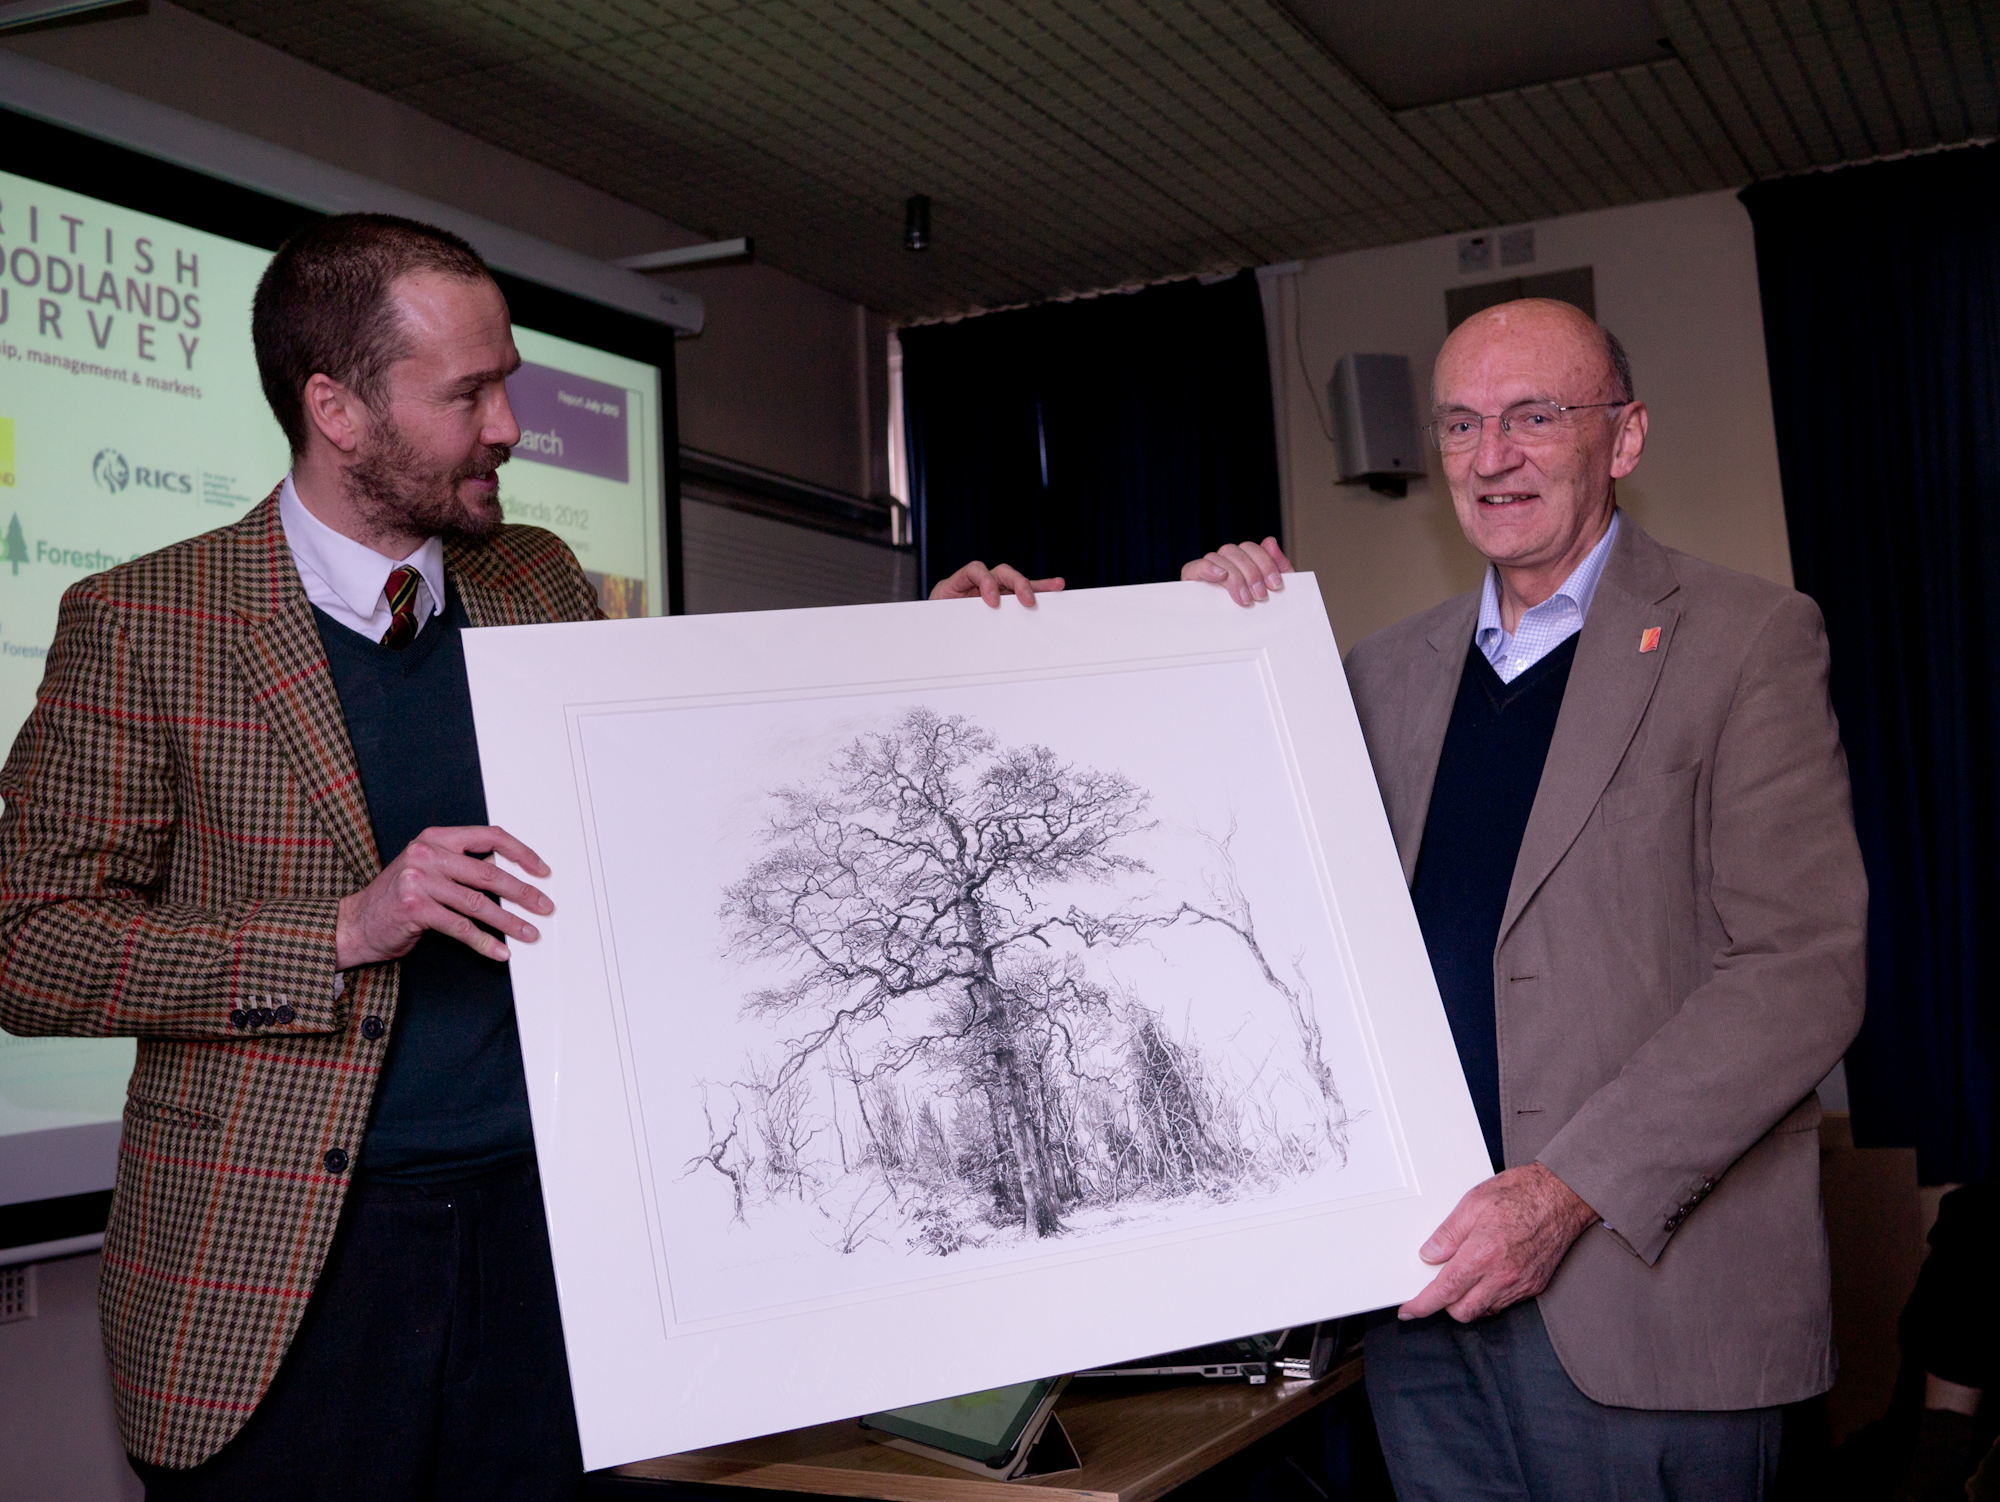 Alistair Yeomans presents a gift of appreciation to Dr Derek Nicholls of Cambridge University